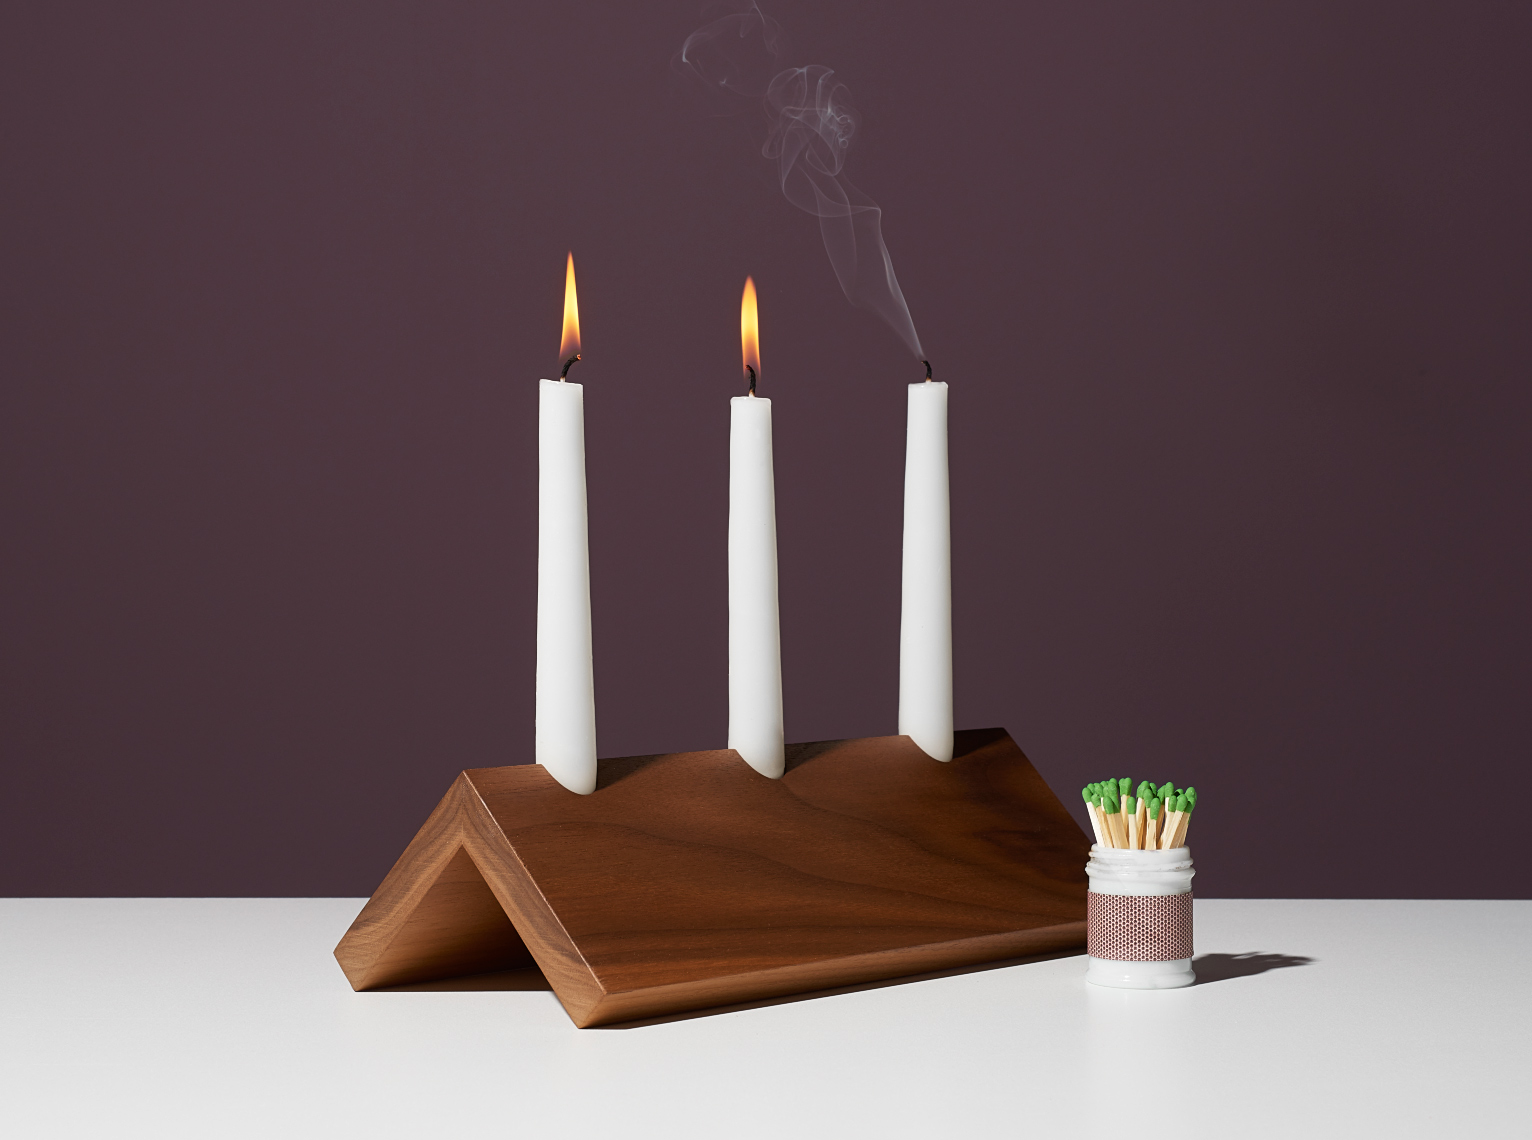 modern walnut a frame taper candle holder with 2 white candles with flame and 1 candle blown out with smoke